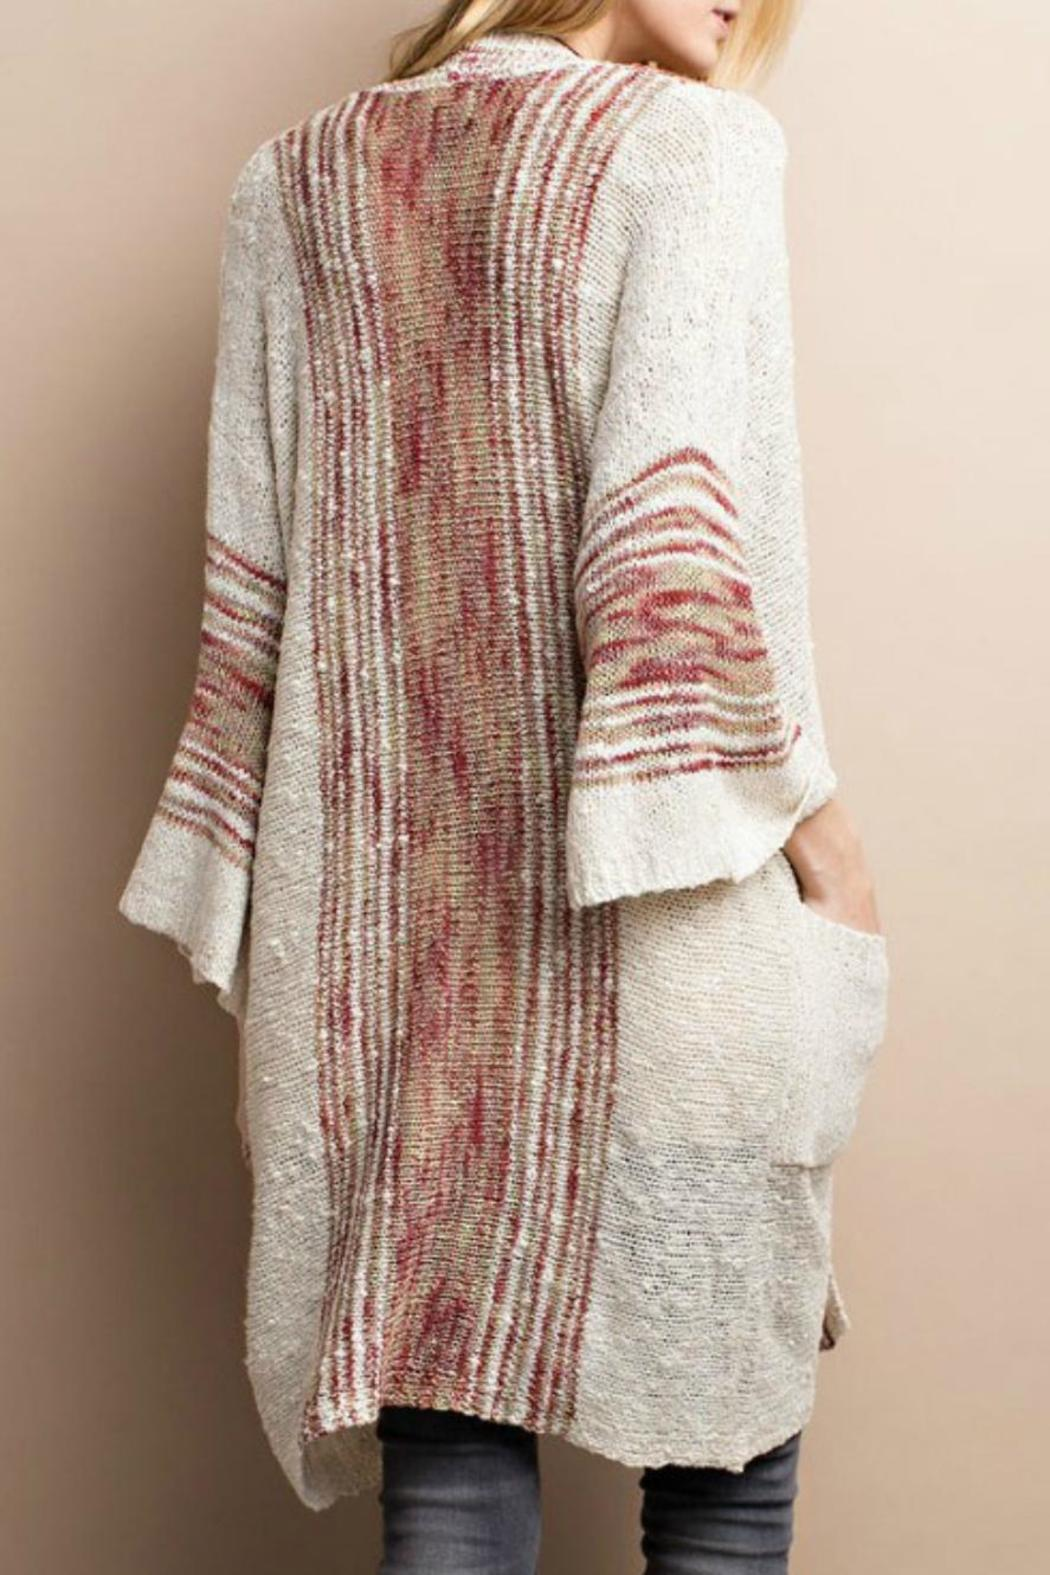 Easel Boho Knit Cardigan From Kansas By Seirer S Clothing